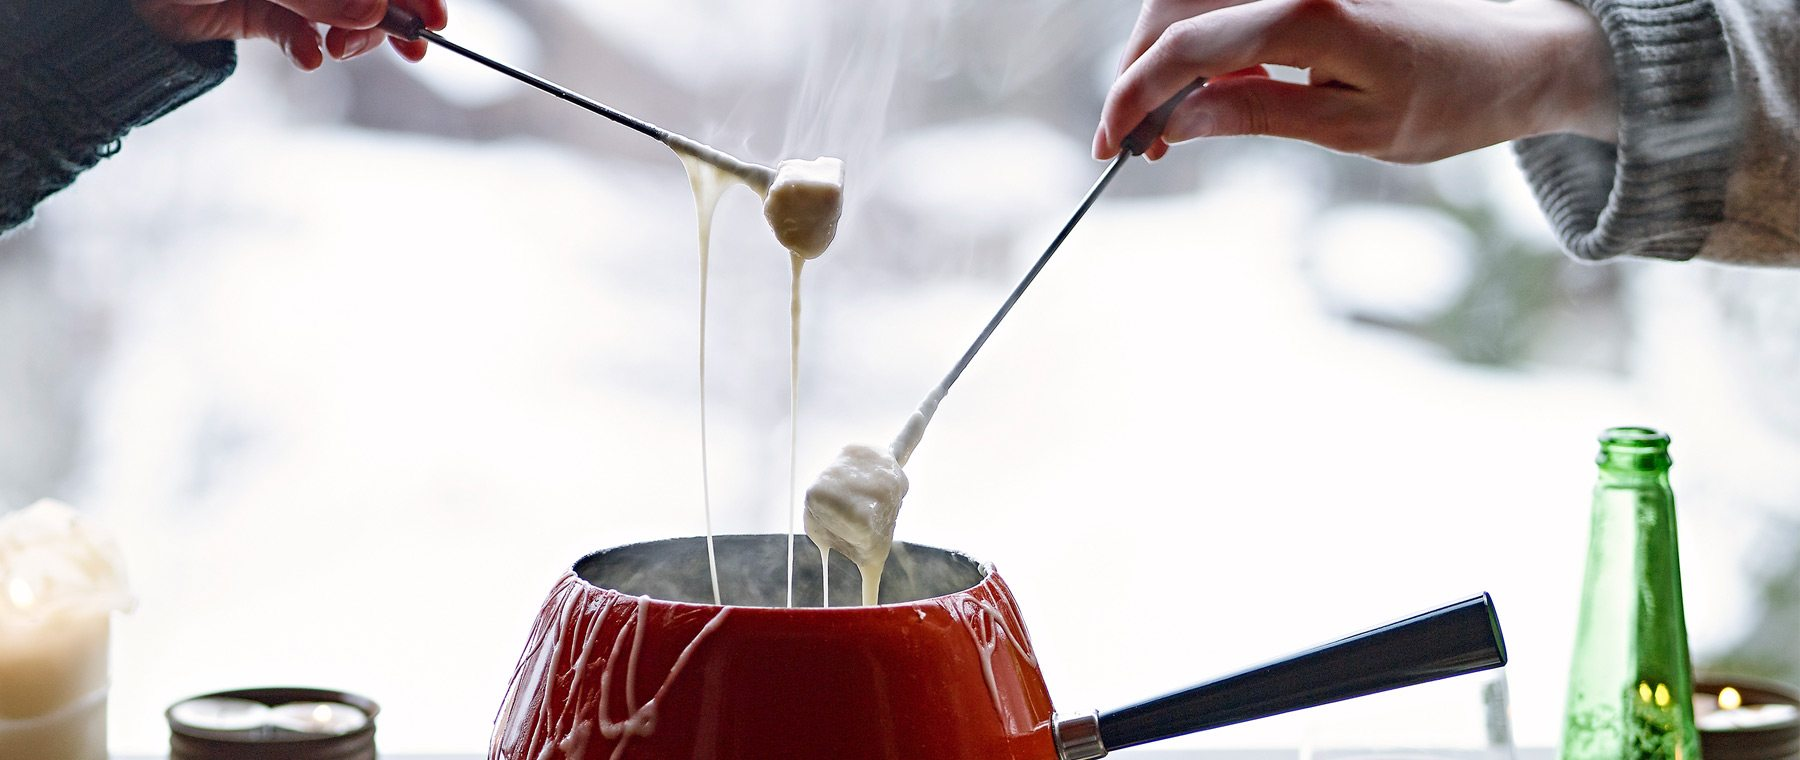 So fond of fondue — When it gets cold, enjoy quintessential Swiss comfort food, out!